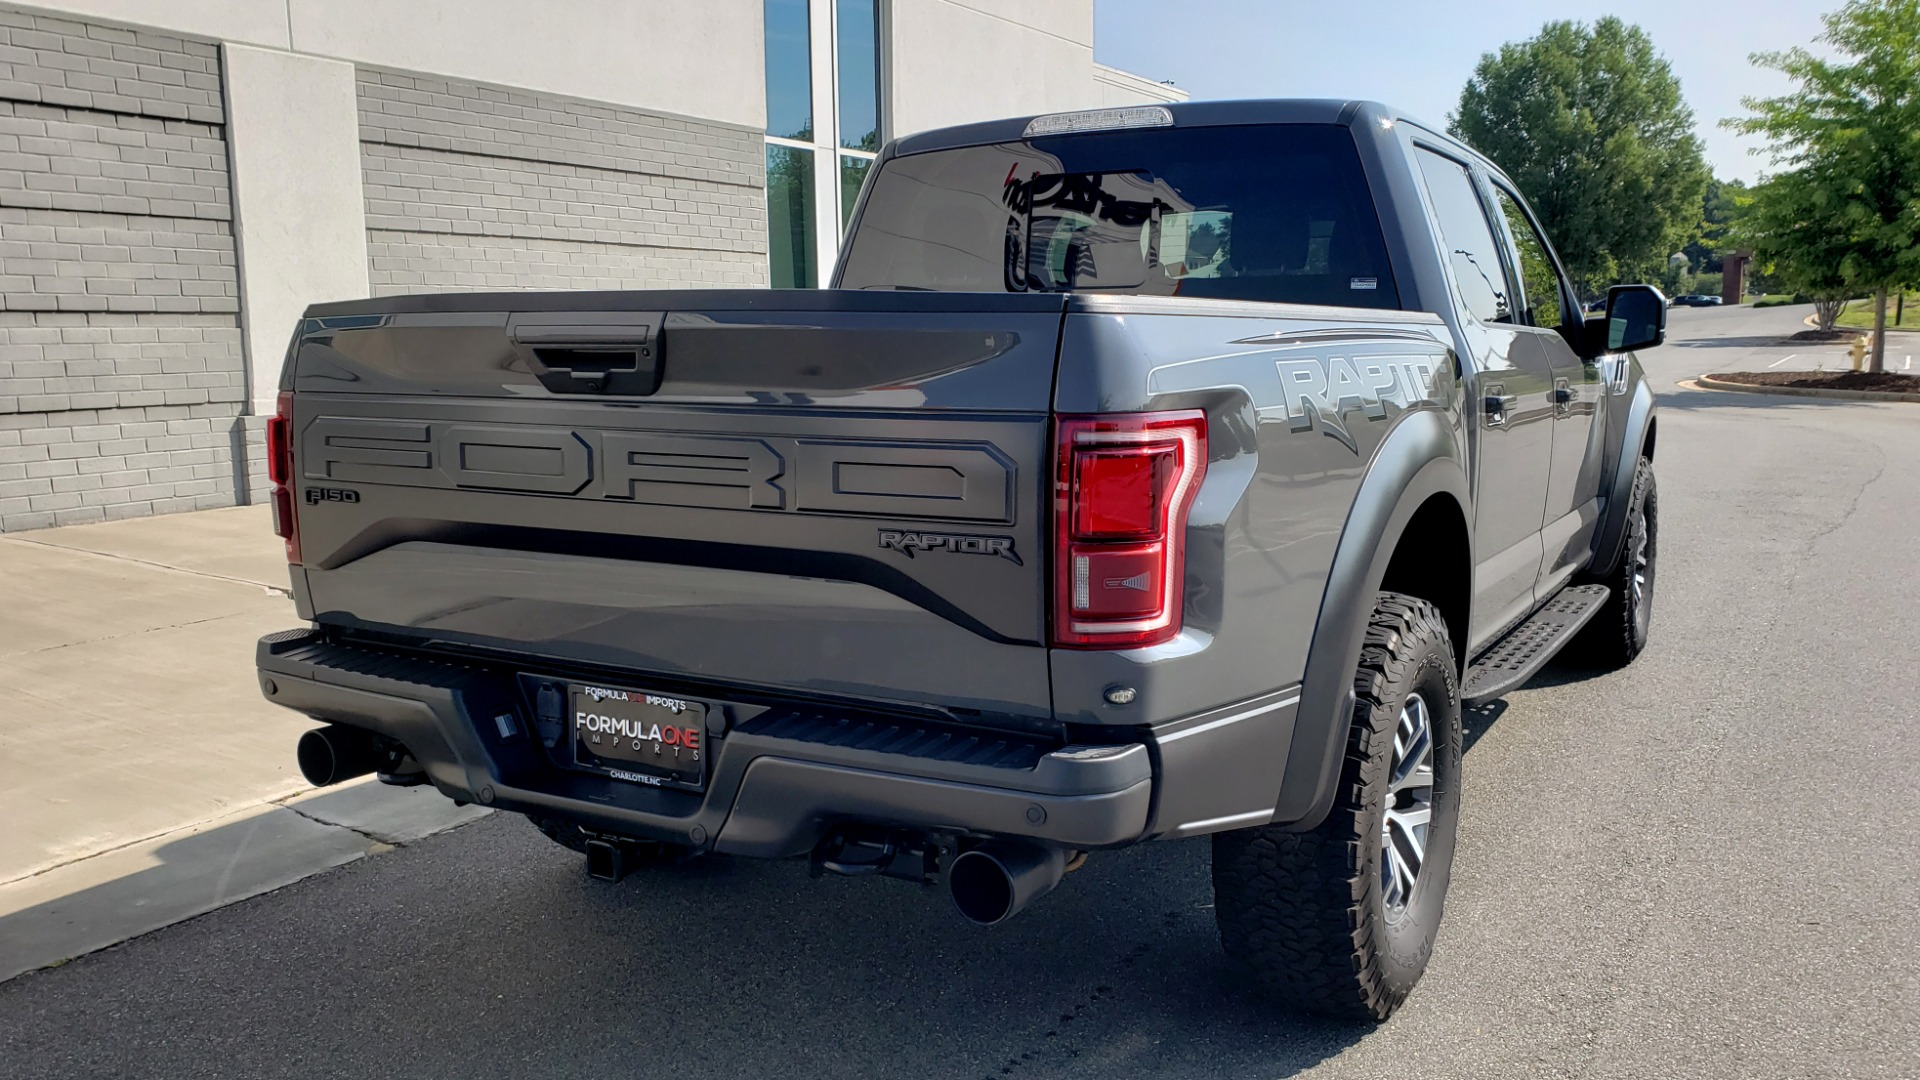 Used 2018 Ford F-150 RAPTOR 4X4 SUPERCREW / NAV / PANO-ROOF / REARVIEW for sale $69,999 at Formula Imports in Charlotte NC 28227 2